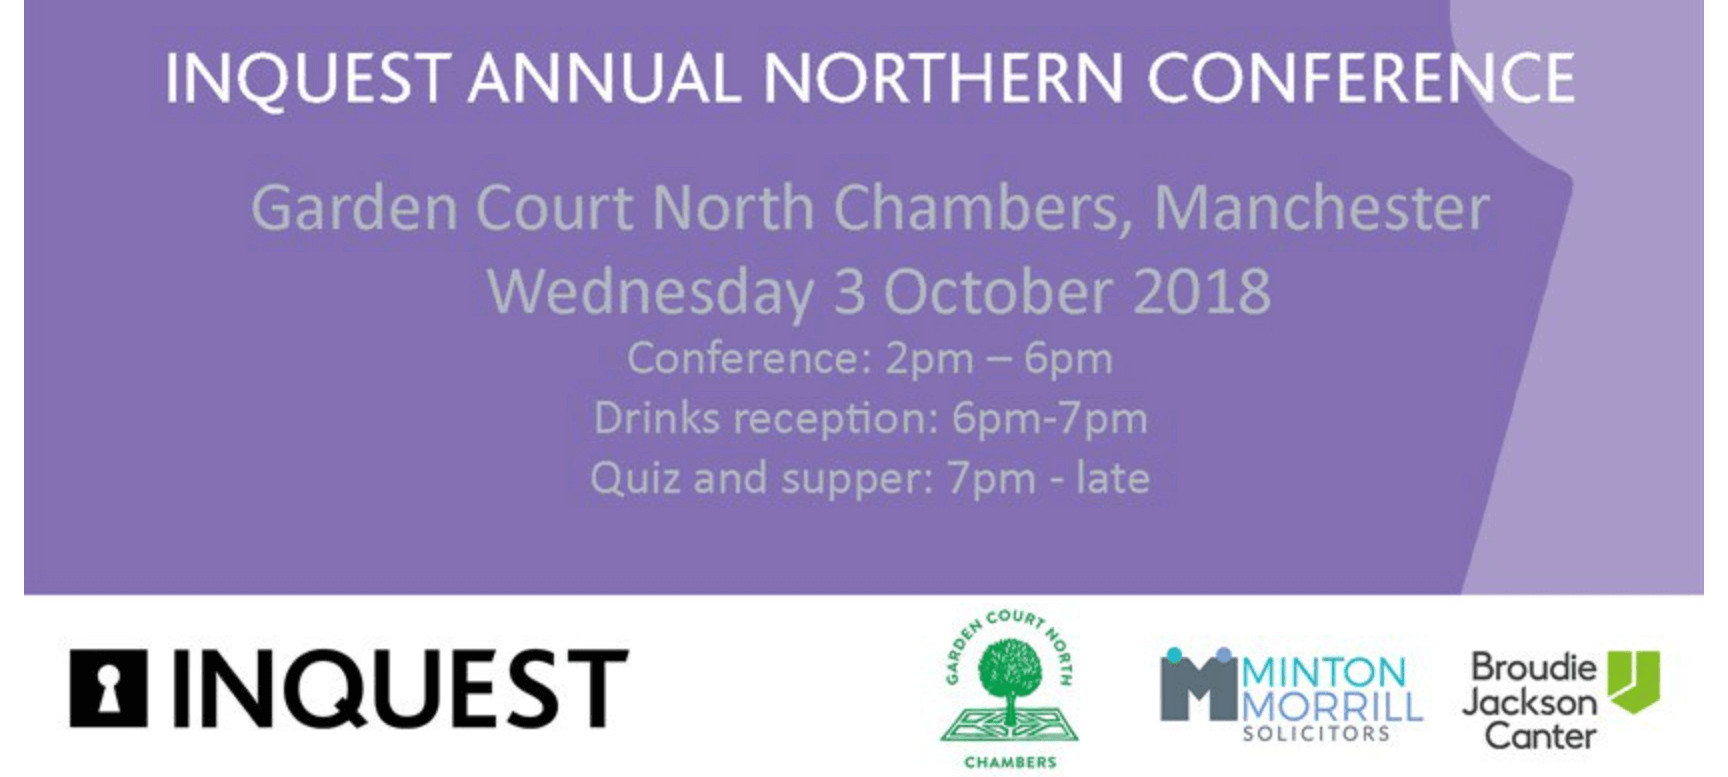 INQUEST Northern Conference 2018